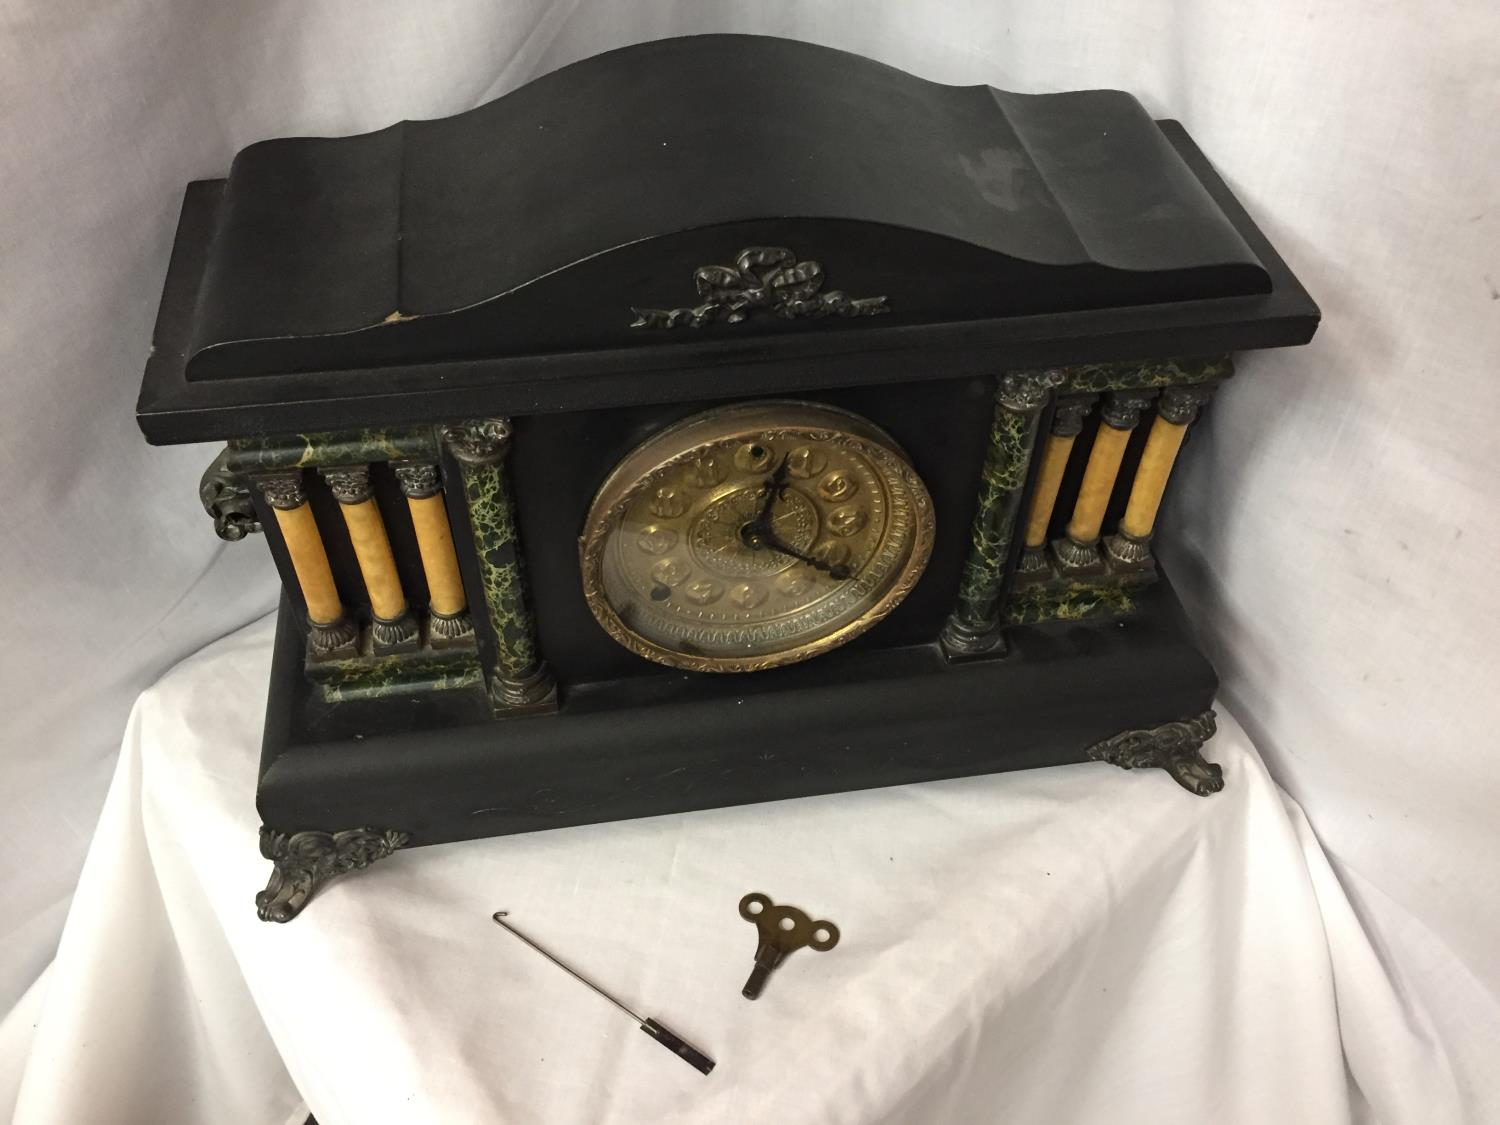 A VICTORIAN EIGHT DAY CATHEDRAL GONG EBONISED MANTEL CLOCK BY THE SESSIONS CLOCK CO. - Image 2 of 6